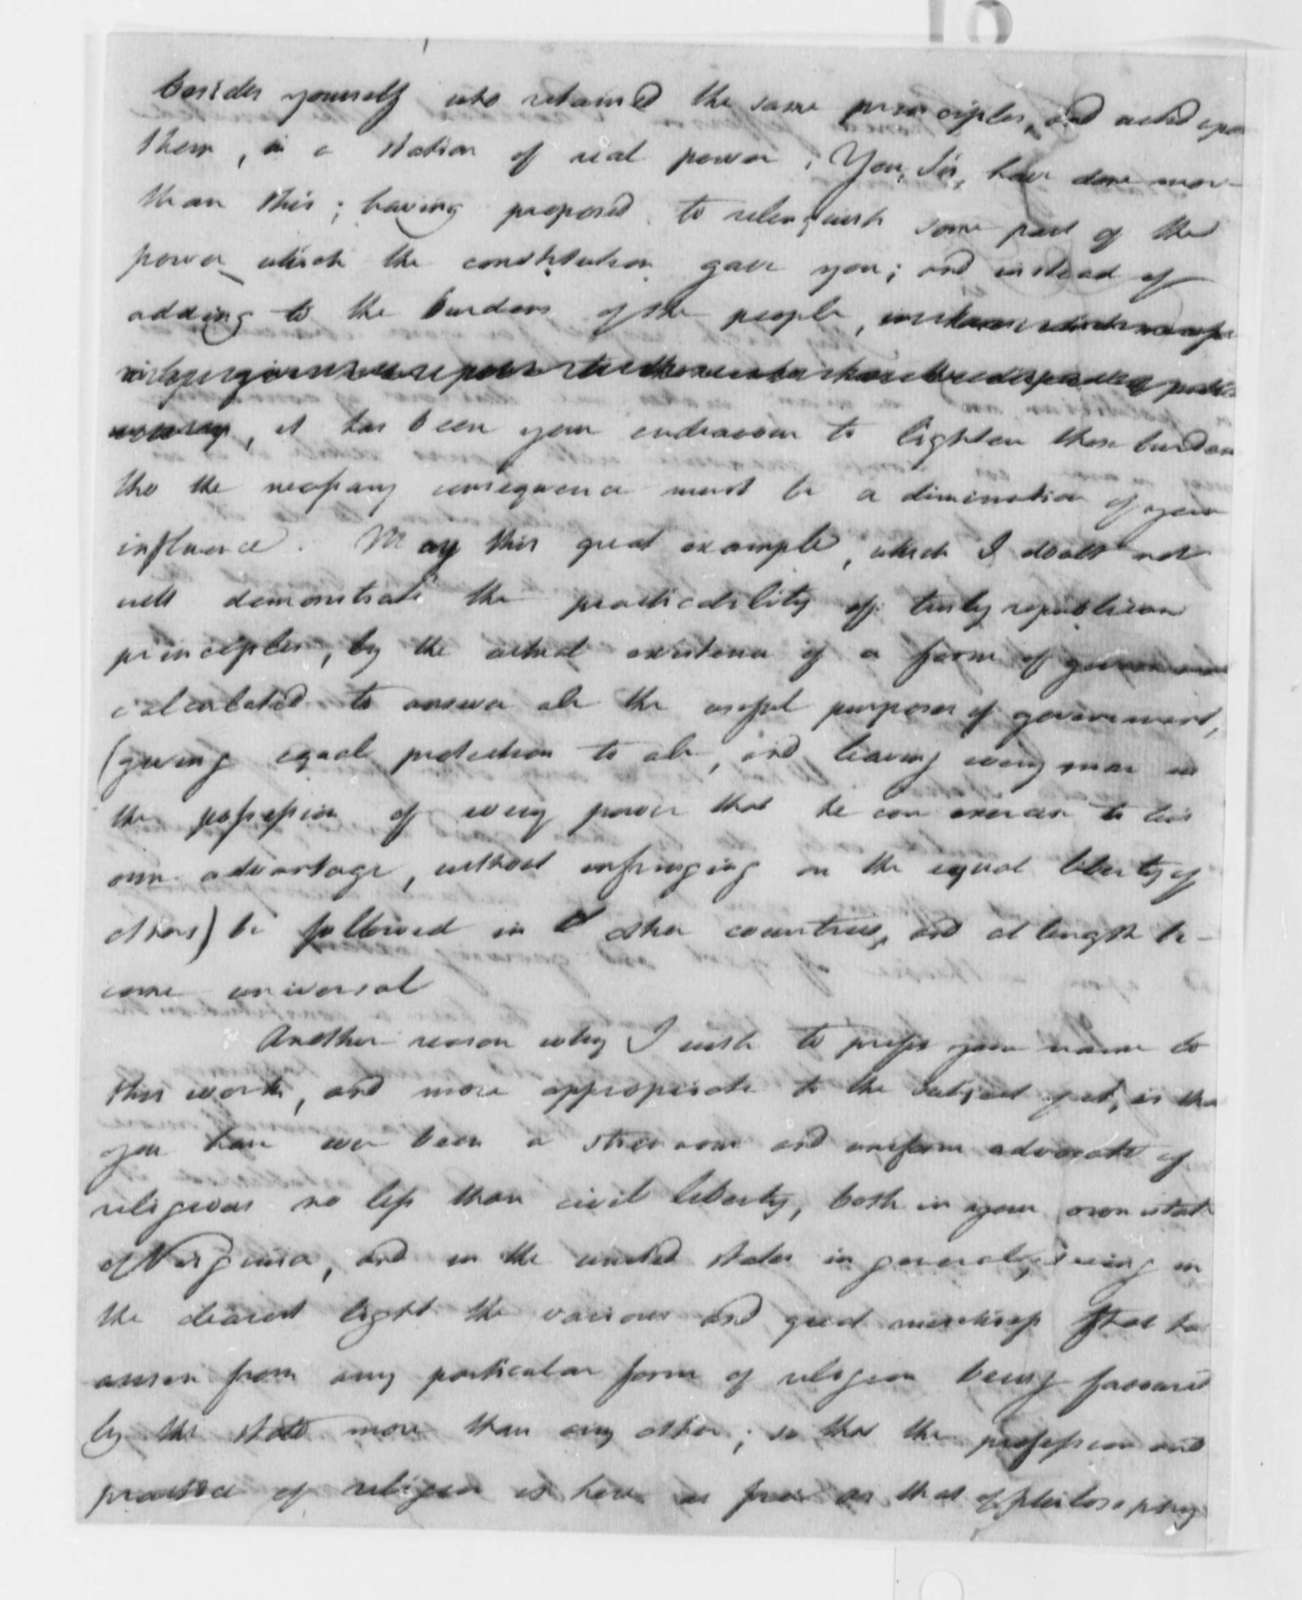 Joseph Priestley to Thomas Jefferson, June 17, 1802